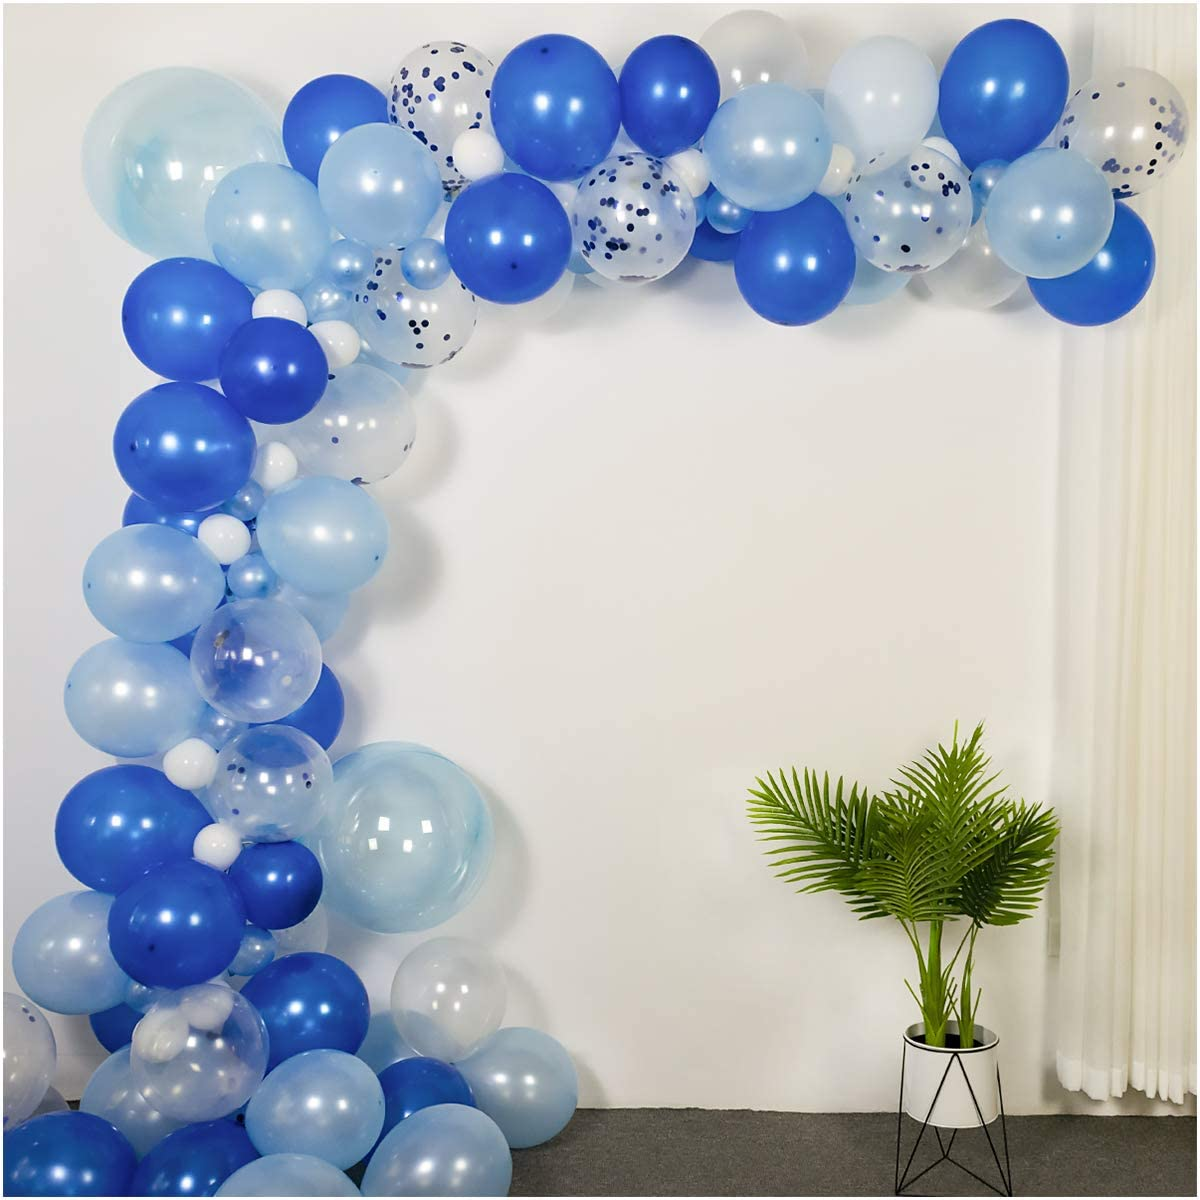 Luvier Ocean Blue Latex Balloon Garland Arch Kit with Strip/102pcs Latex/Confetti Large to Small Party Balloons for Shark Under The sea Party Baby Shower Decor (Ocean-Blue)